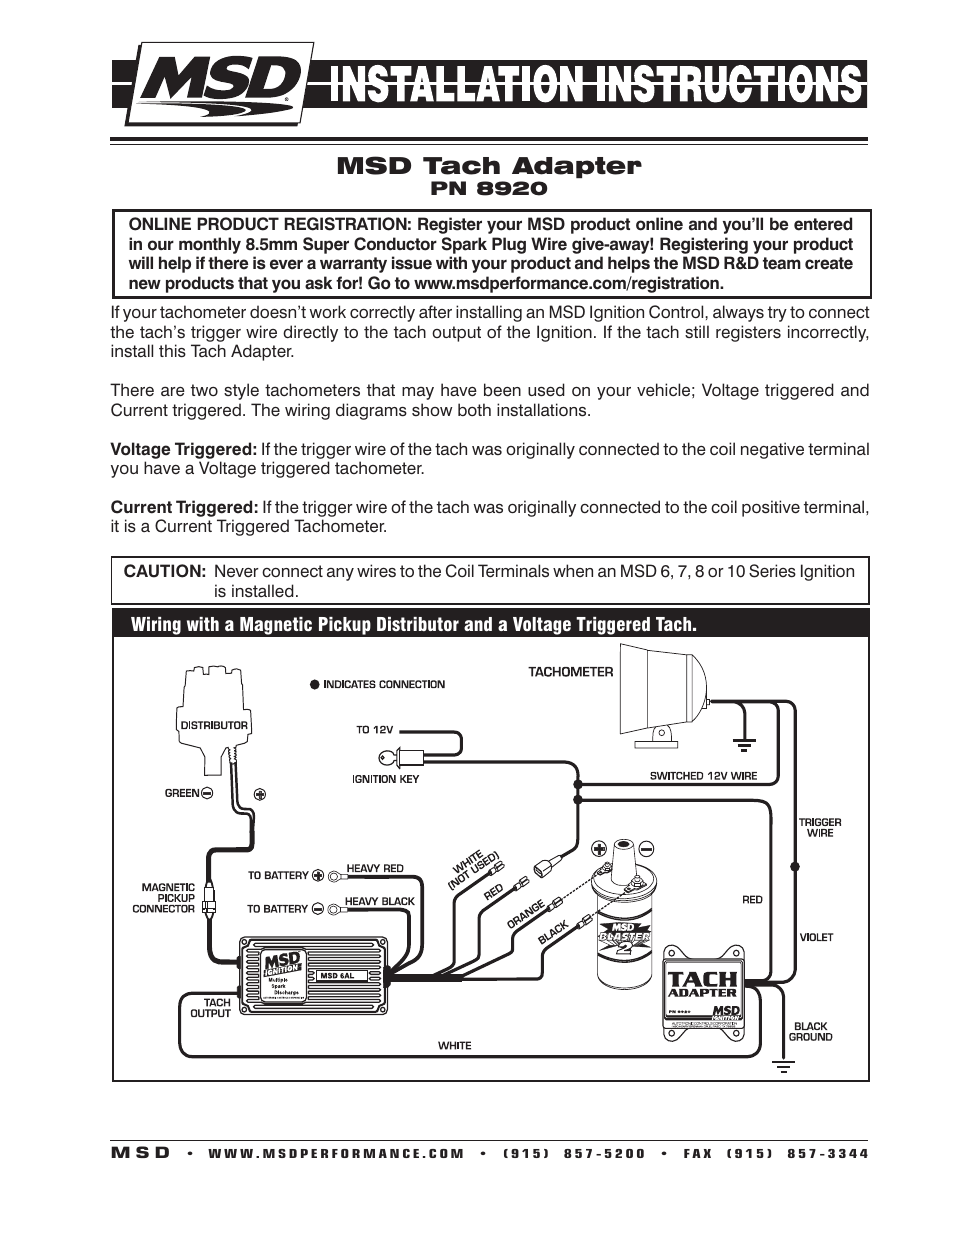 Msd Tach Wiring Data Schematic Taco Drawing 8920 Adapter Magnetic Trigger Installation User Manual 2 Rh Manualsdir Com Dis Driver